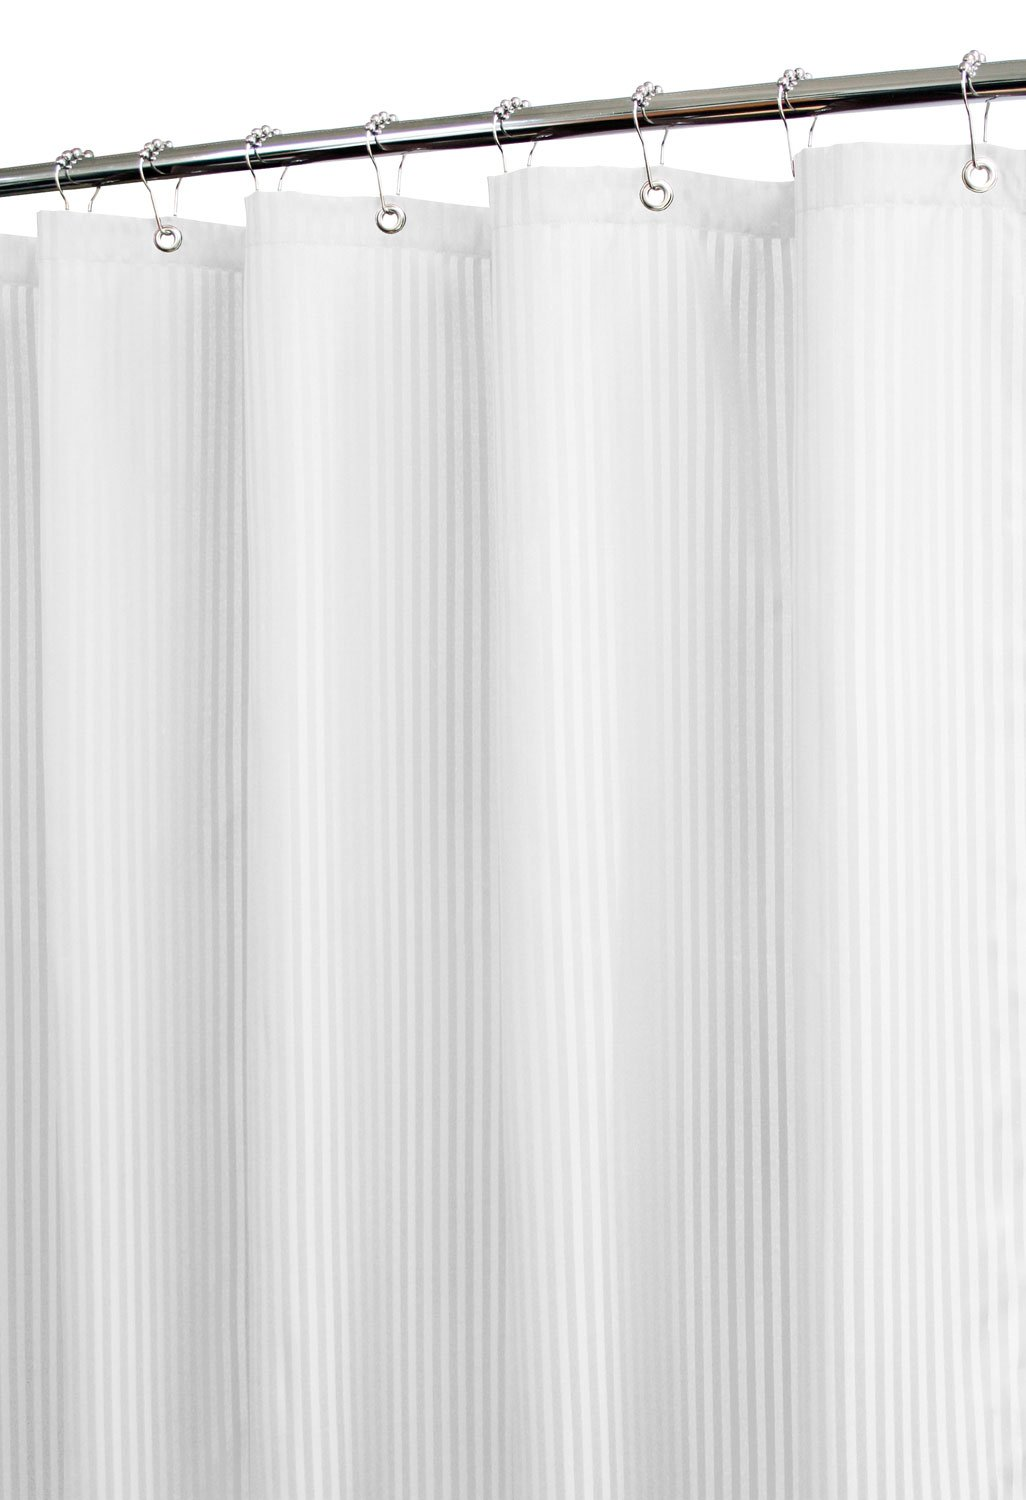 Amazon.com: Park B. Smith Satin Stripe Shower Curtain With Hooks, White:  Home U0026 Kitchen